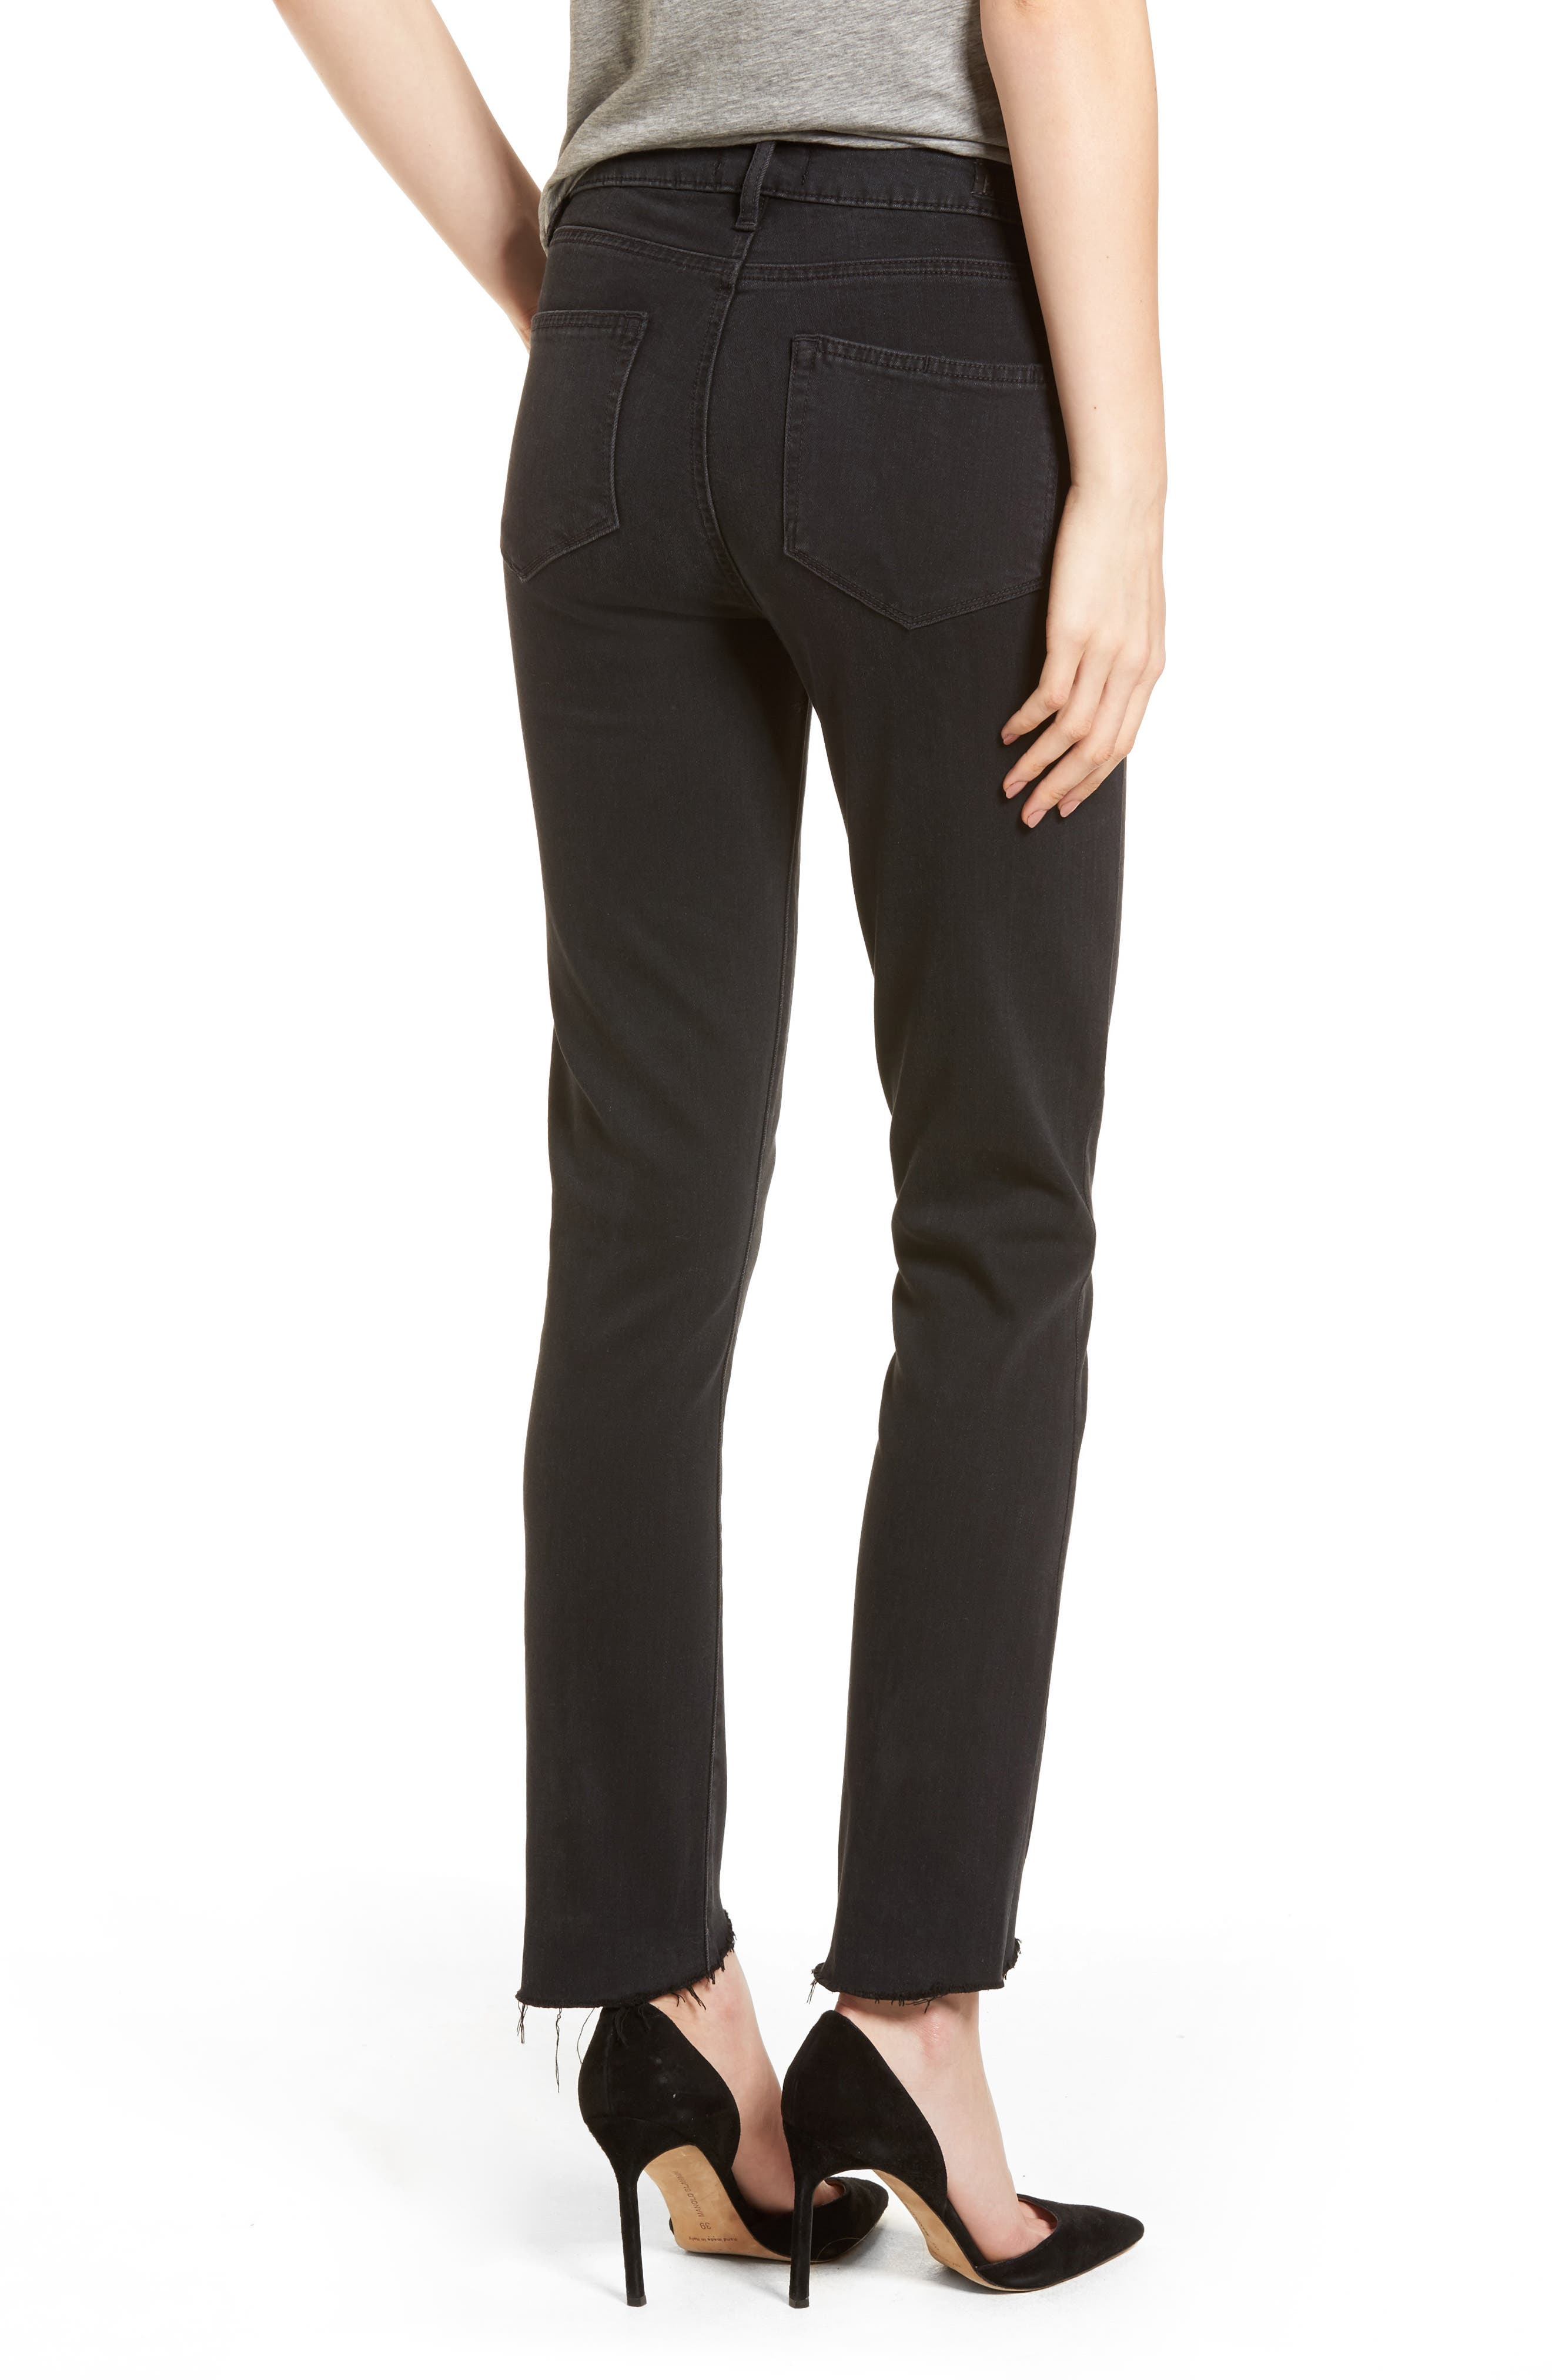 Transcend - Hoxton High Waist Ultra Skinny Jeans,                             Alternate thumbnail 2, color,                             001